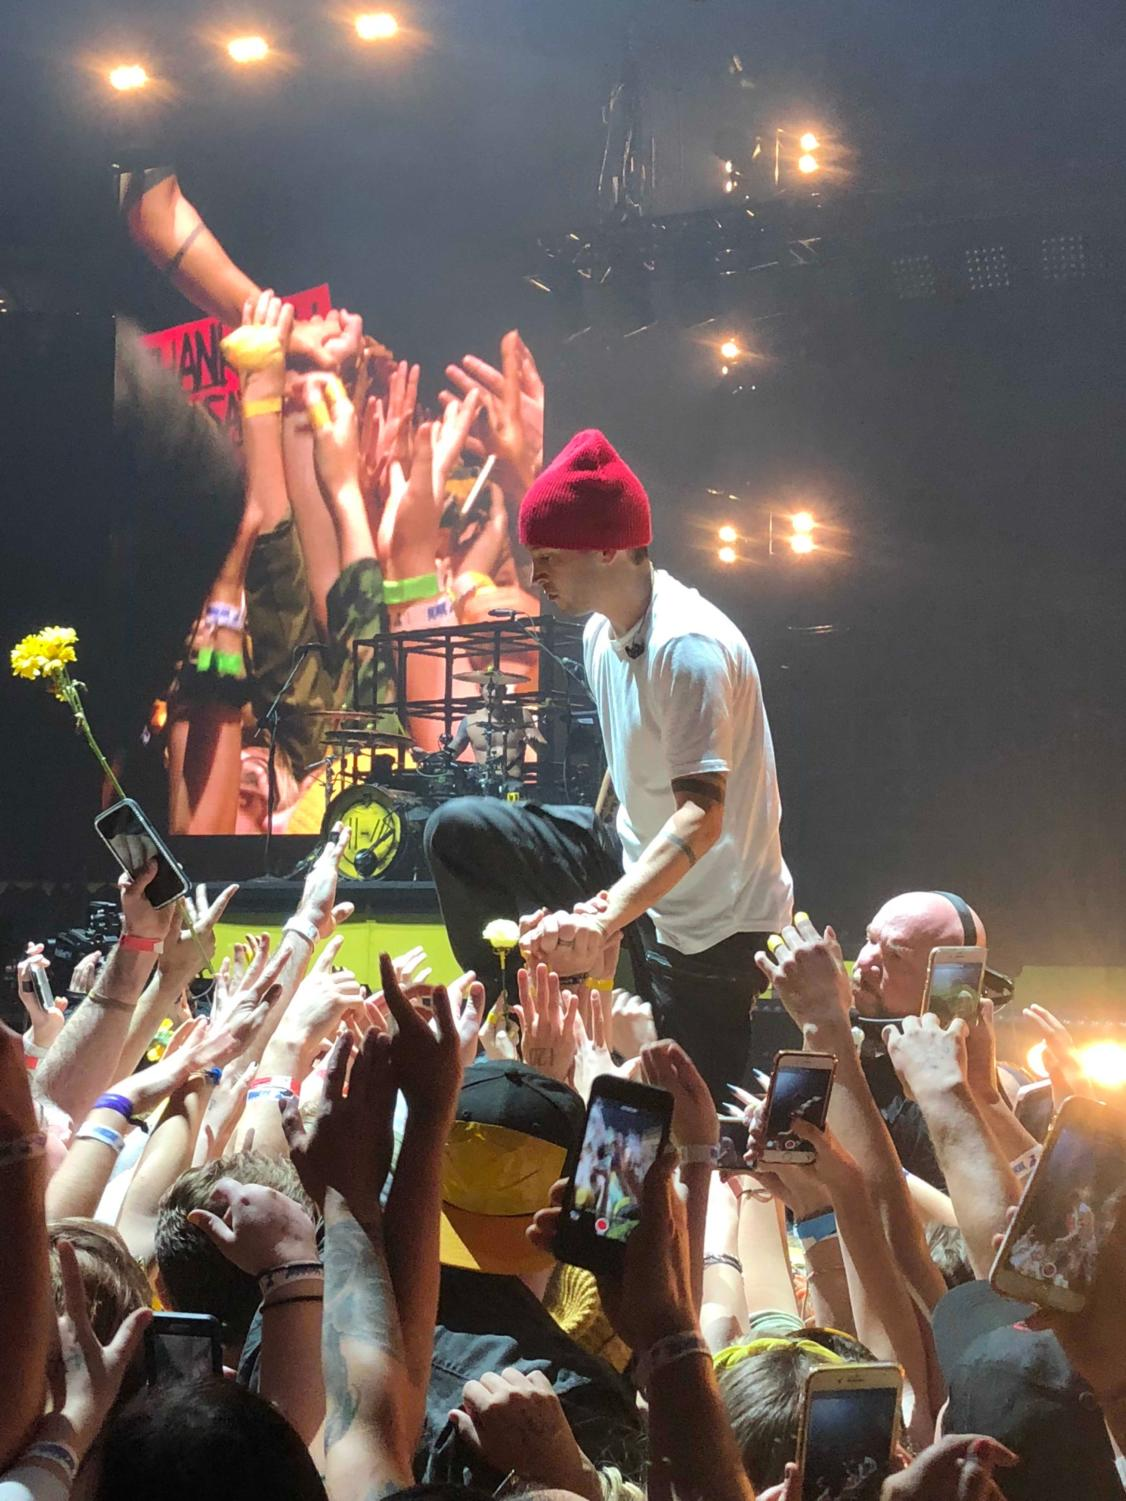 Tyler Joseph being supported by fans while singing the song Ride during the 2018 St. Louis concert.